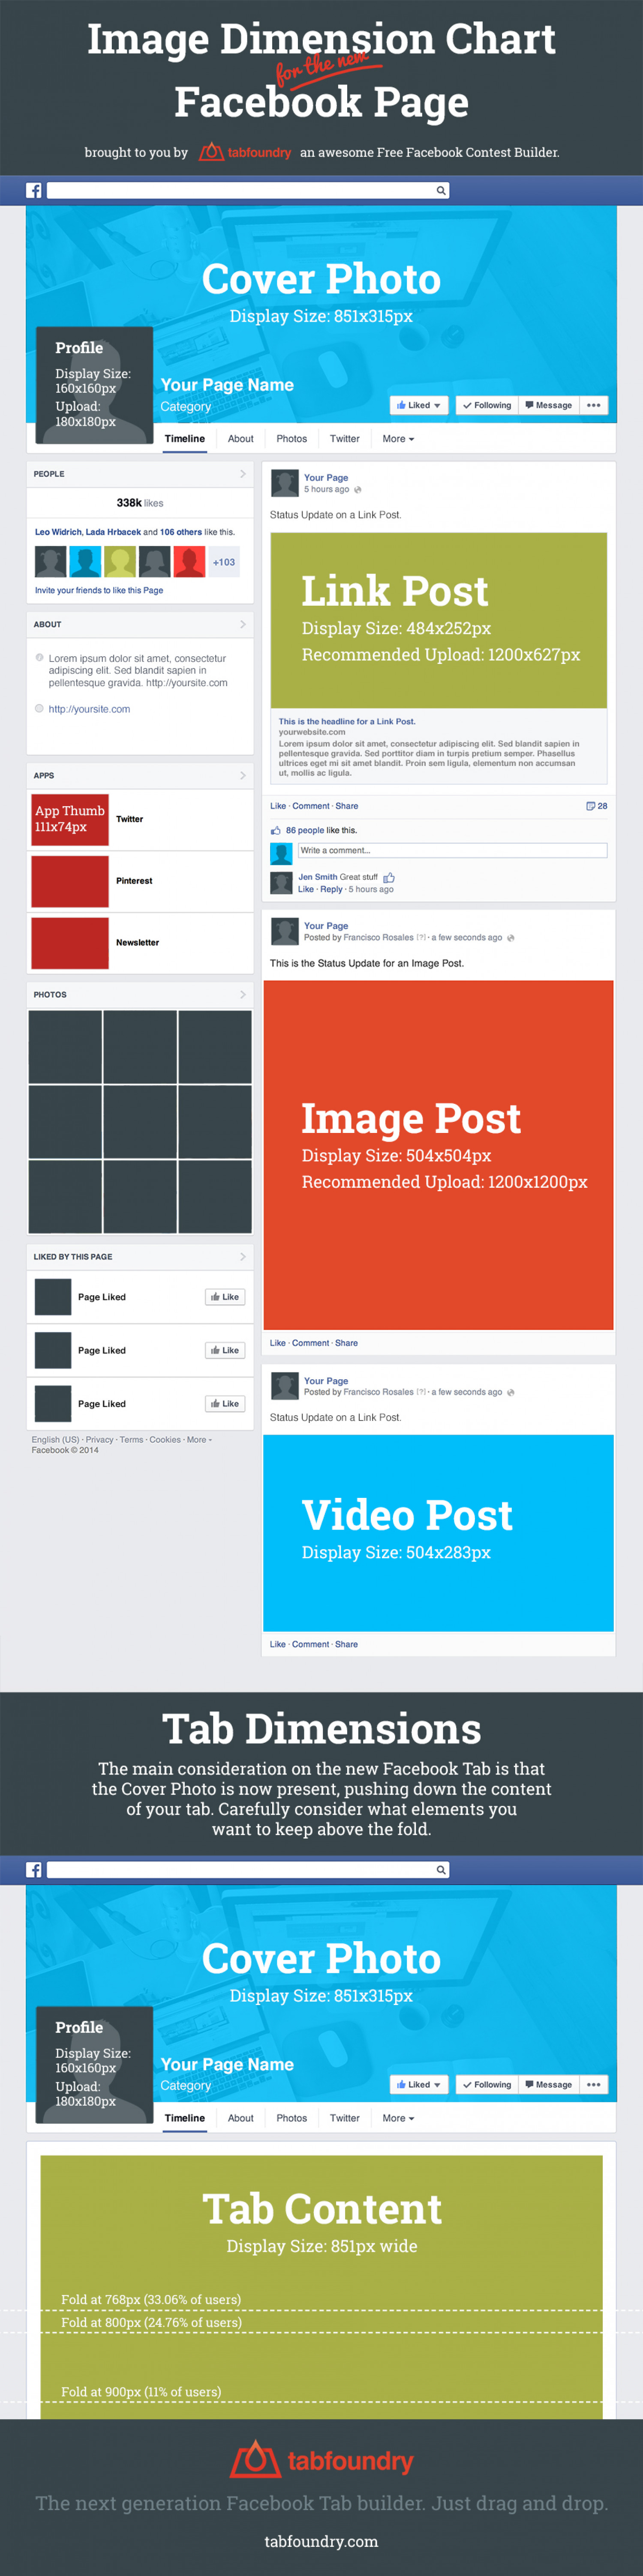 Image Dimension Chart for the new Facebook Page Infographic